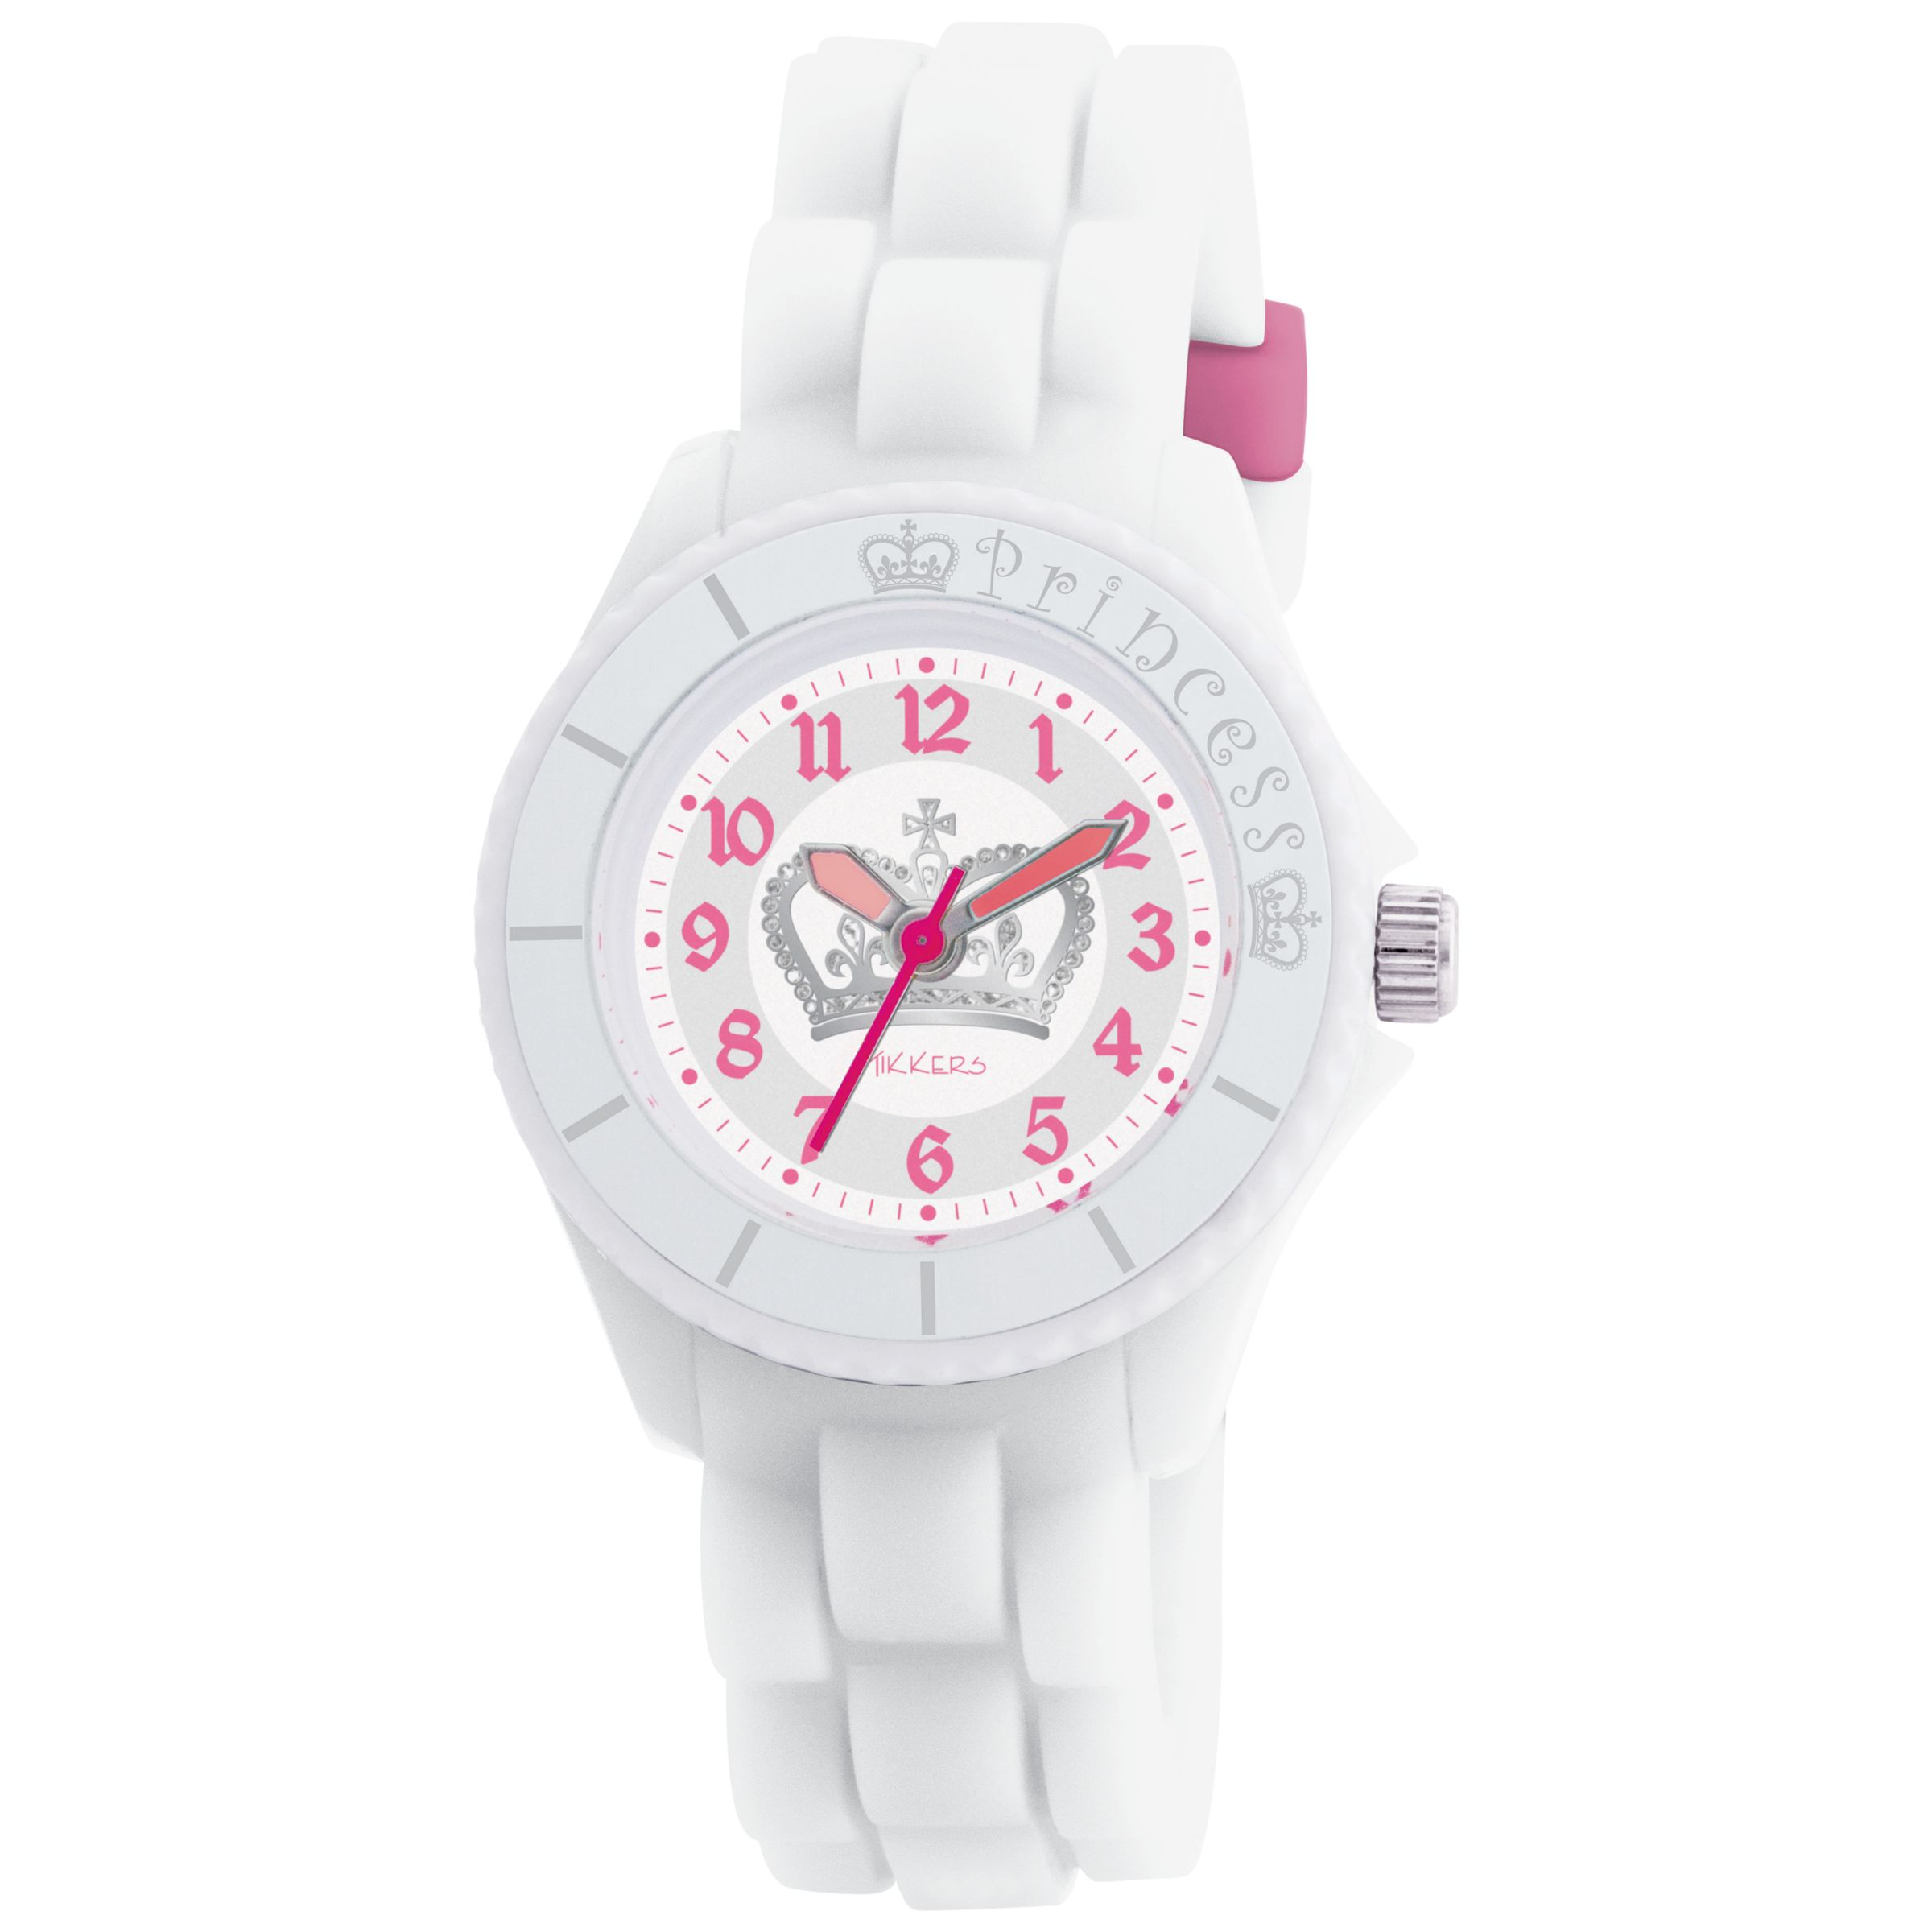 Tikkers TK0022 Kids Crown Rubber Strap with Pink Accents Watch, White